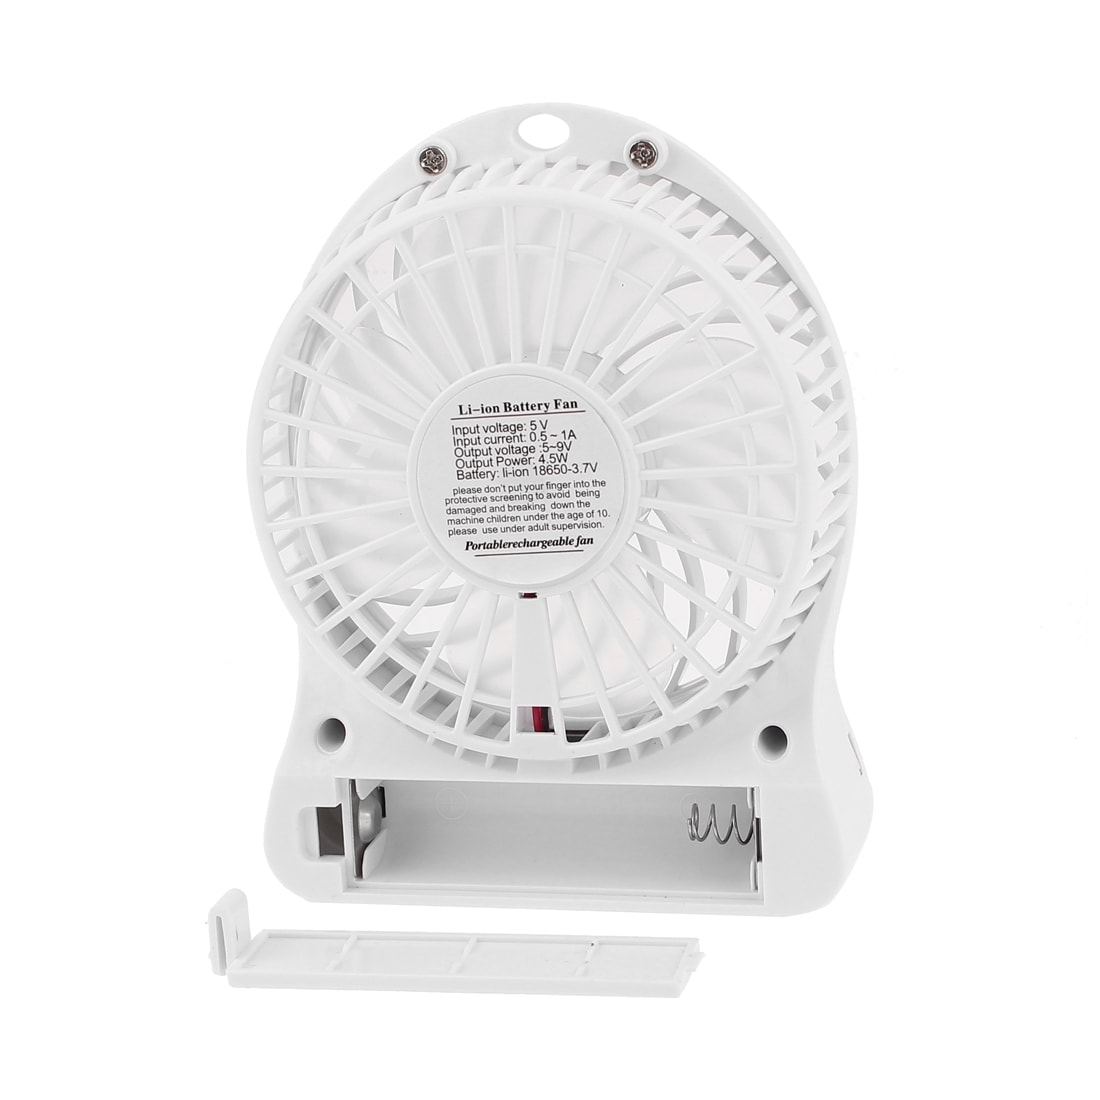 USB Battery Powered Portable Computer Notebook Desk Mini Cooling Fan White